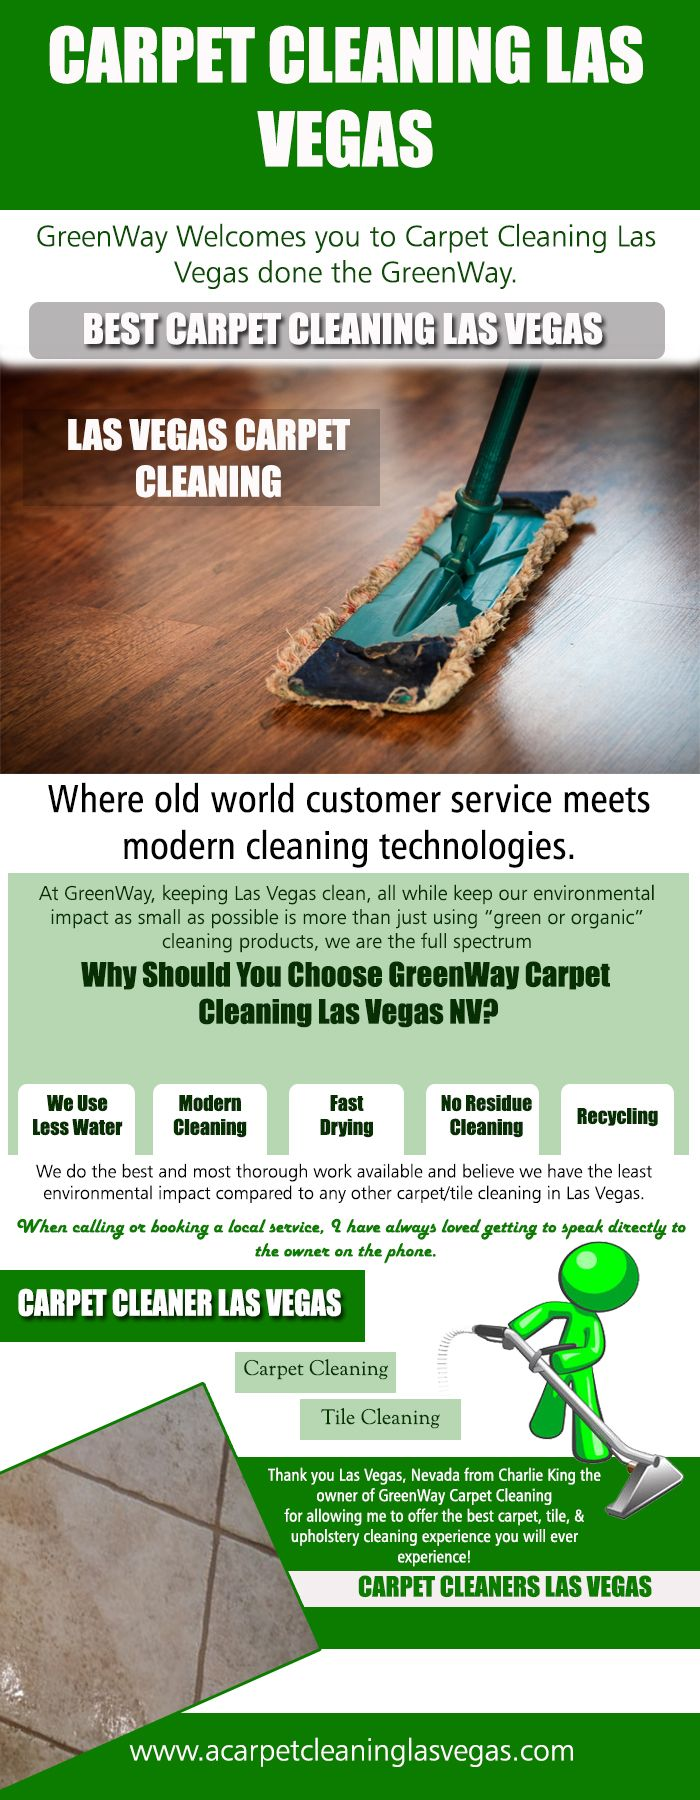 Our site https www acarpetcleaninglasvegas com everybody knows the importance of the role of a carpet cleaning las vegas service